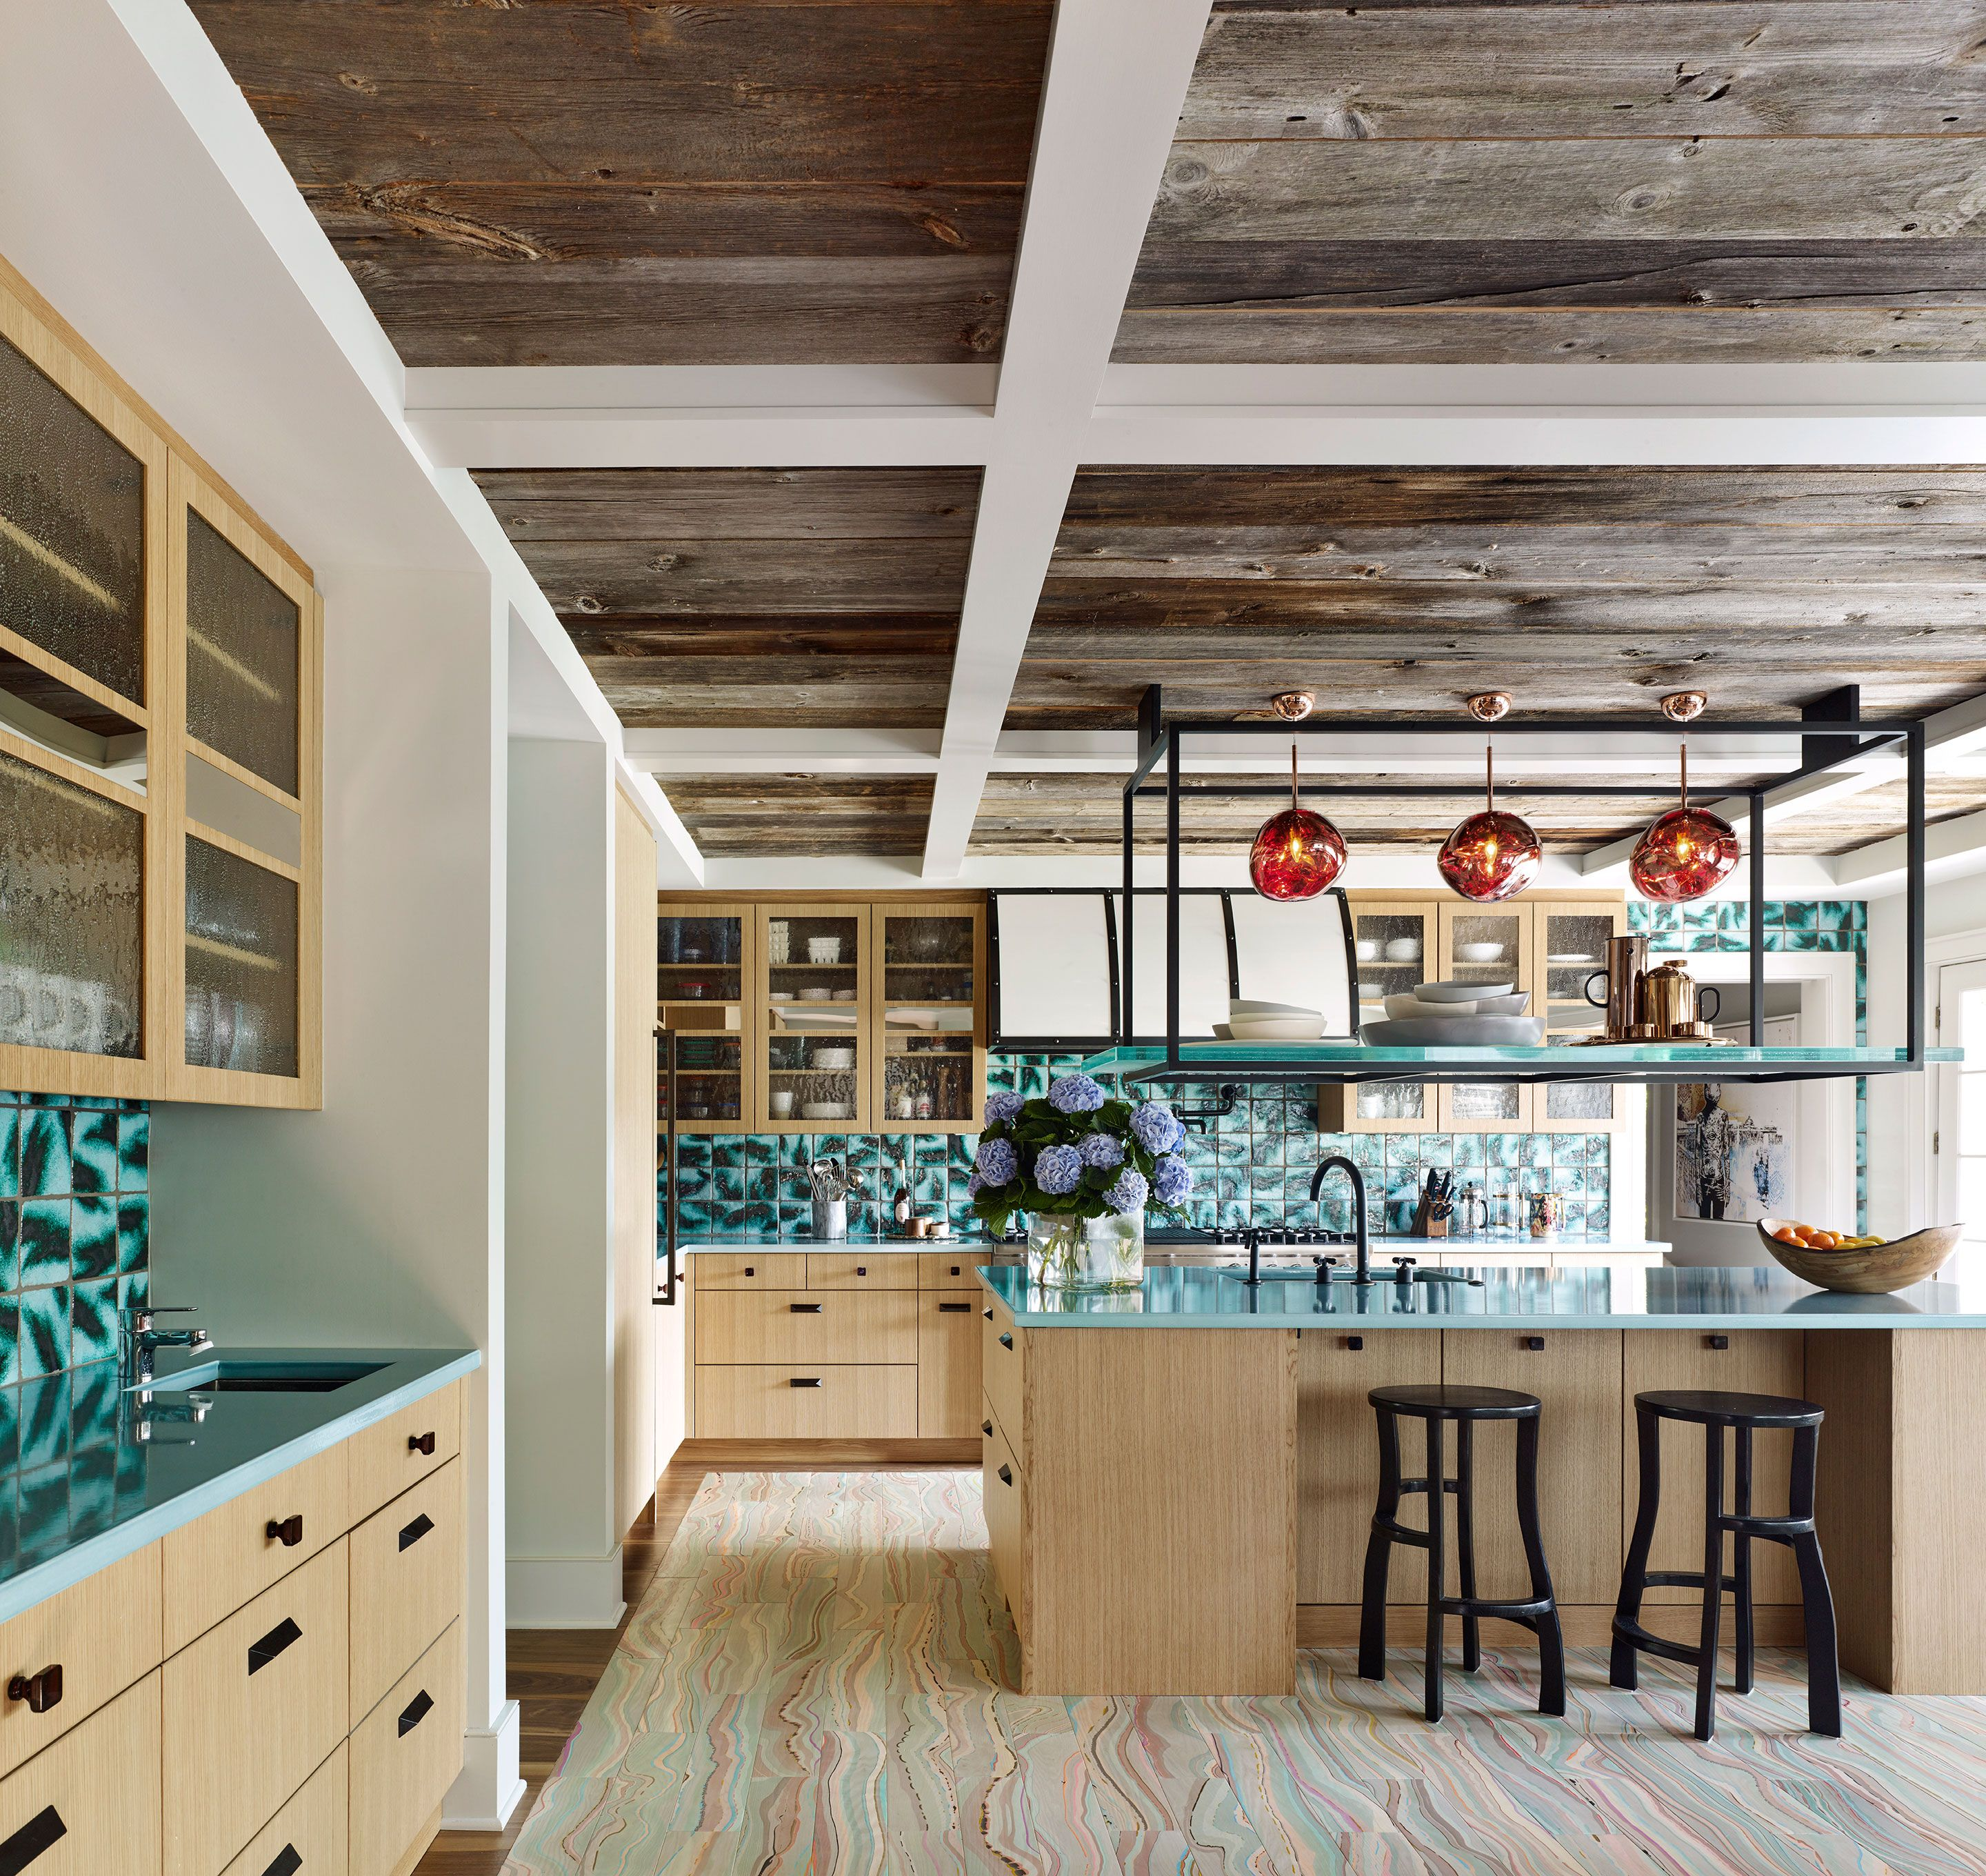 Country Floors Is Proud To Be A Part Of This Amazing Kitchen Project In Robert Downey Jr Residence This Incredible Kit Interior Top Interior Designers Design